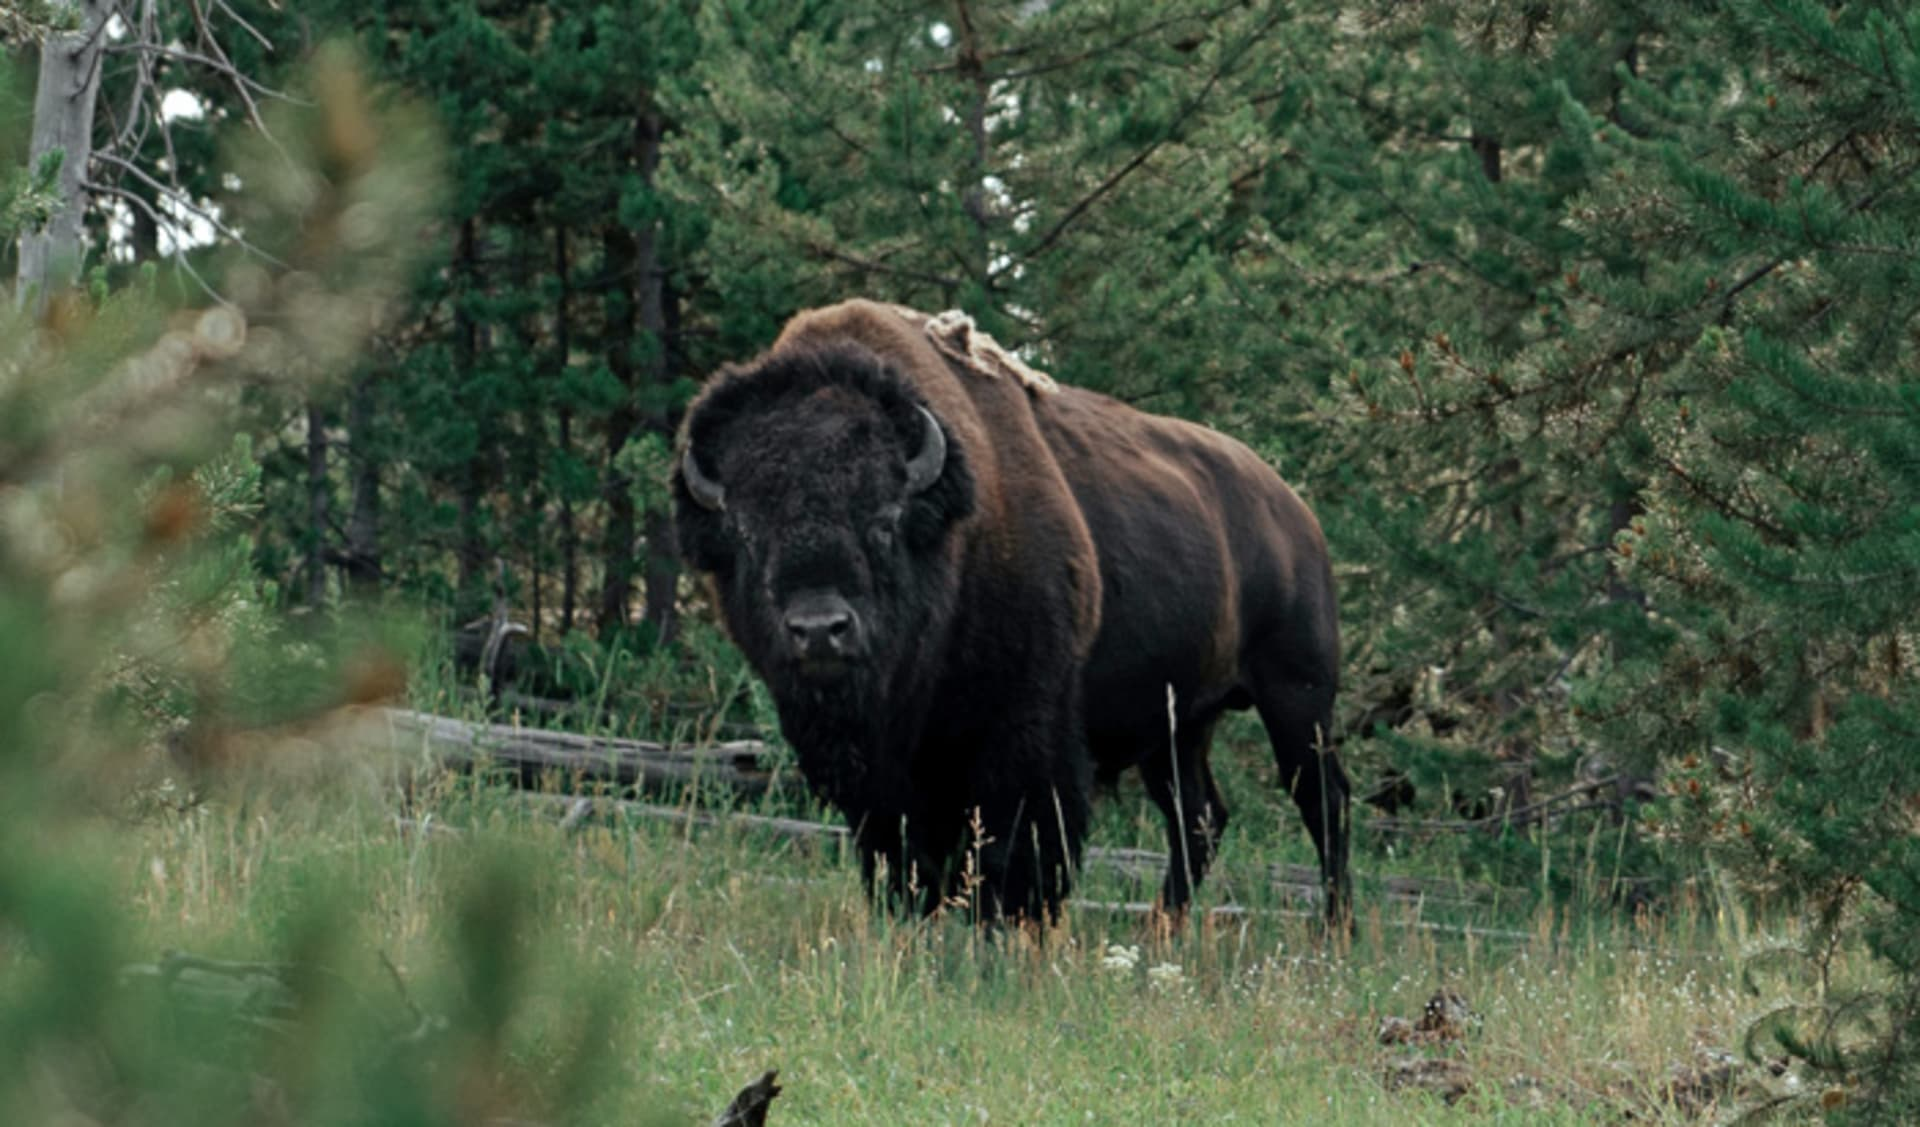 Bison grazing in the bushes